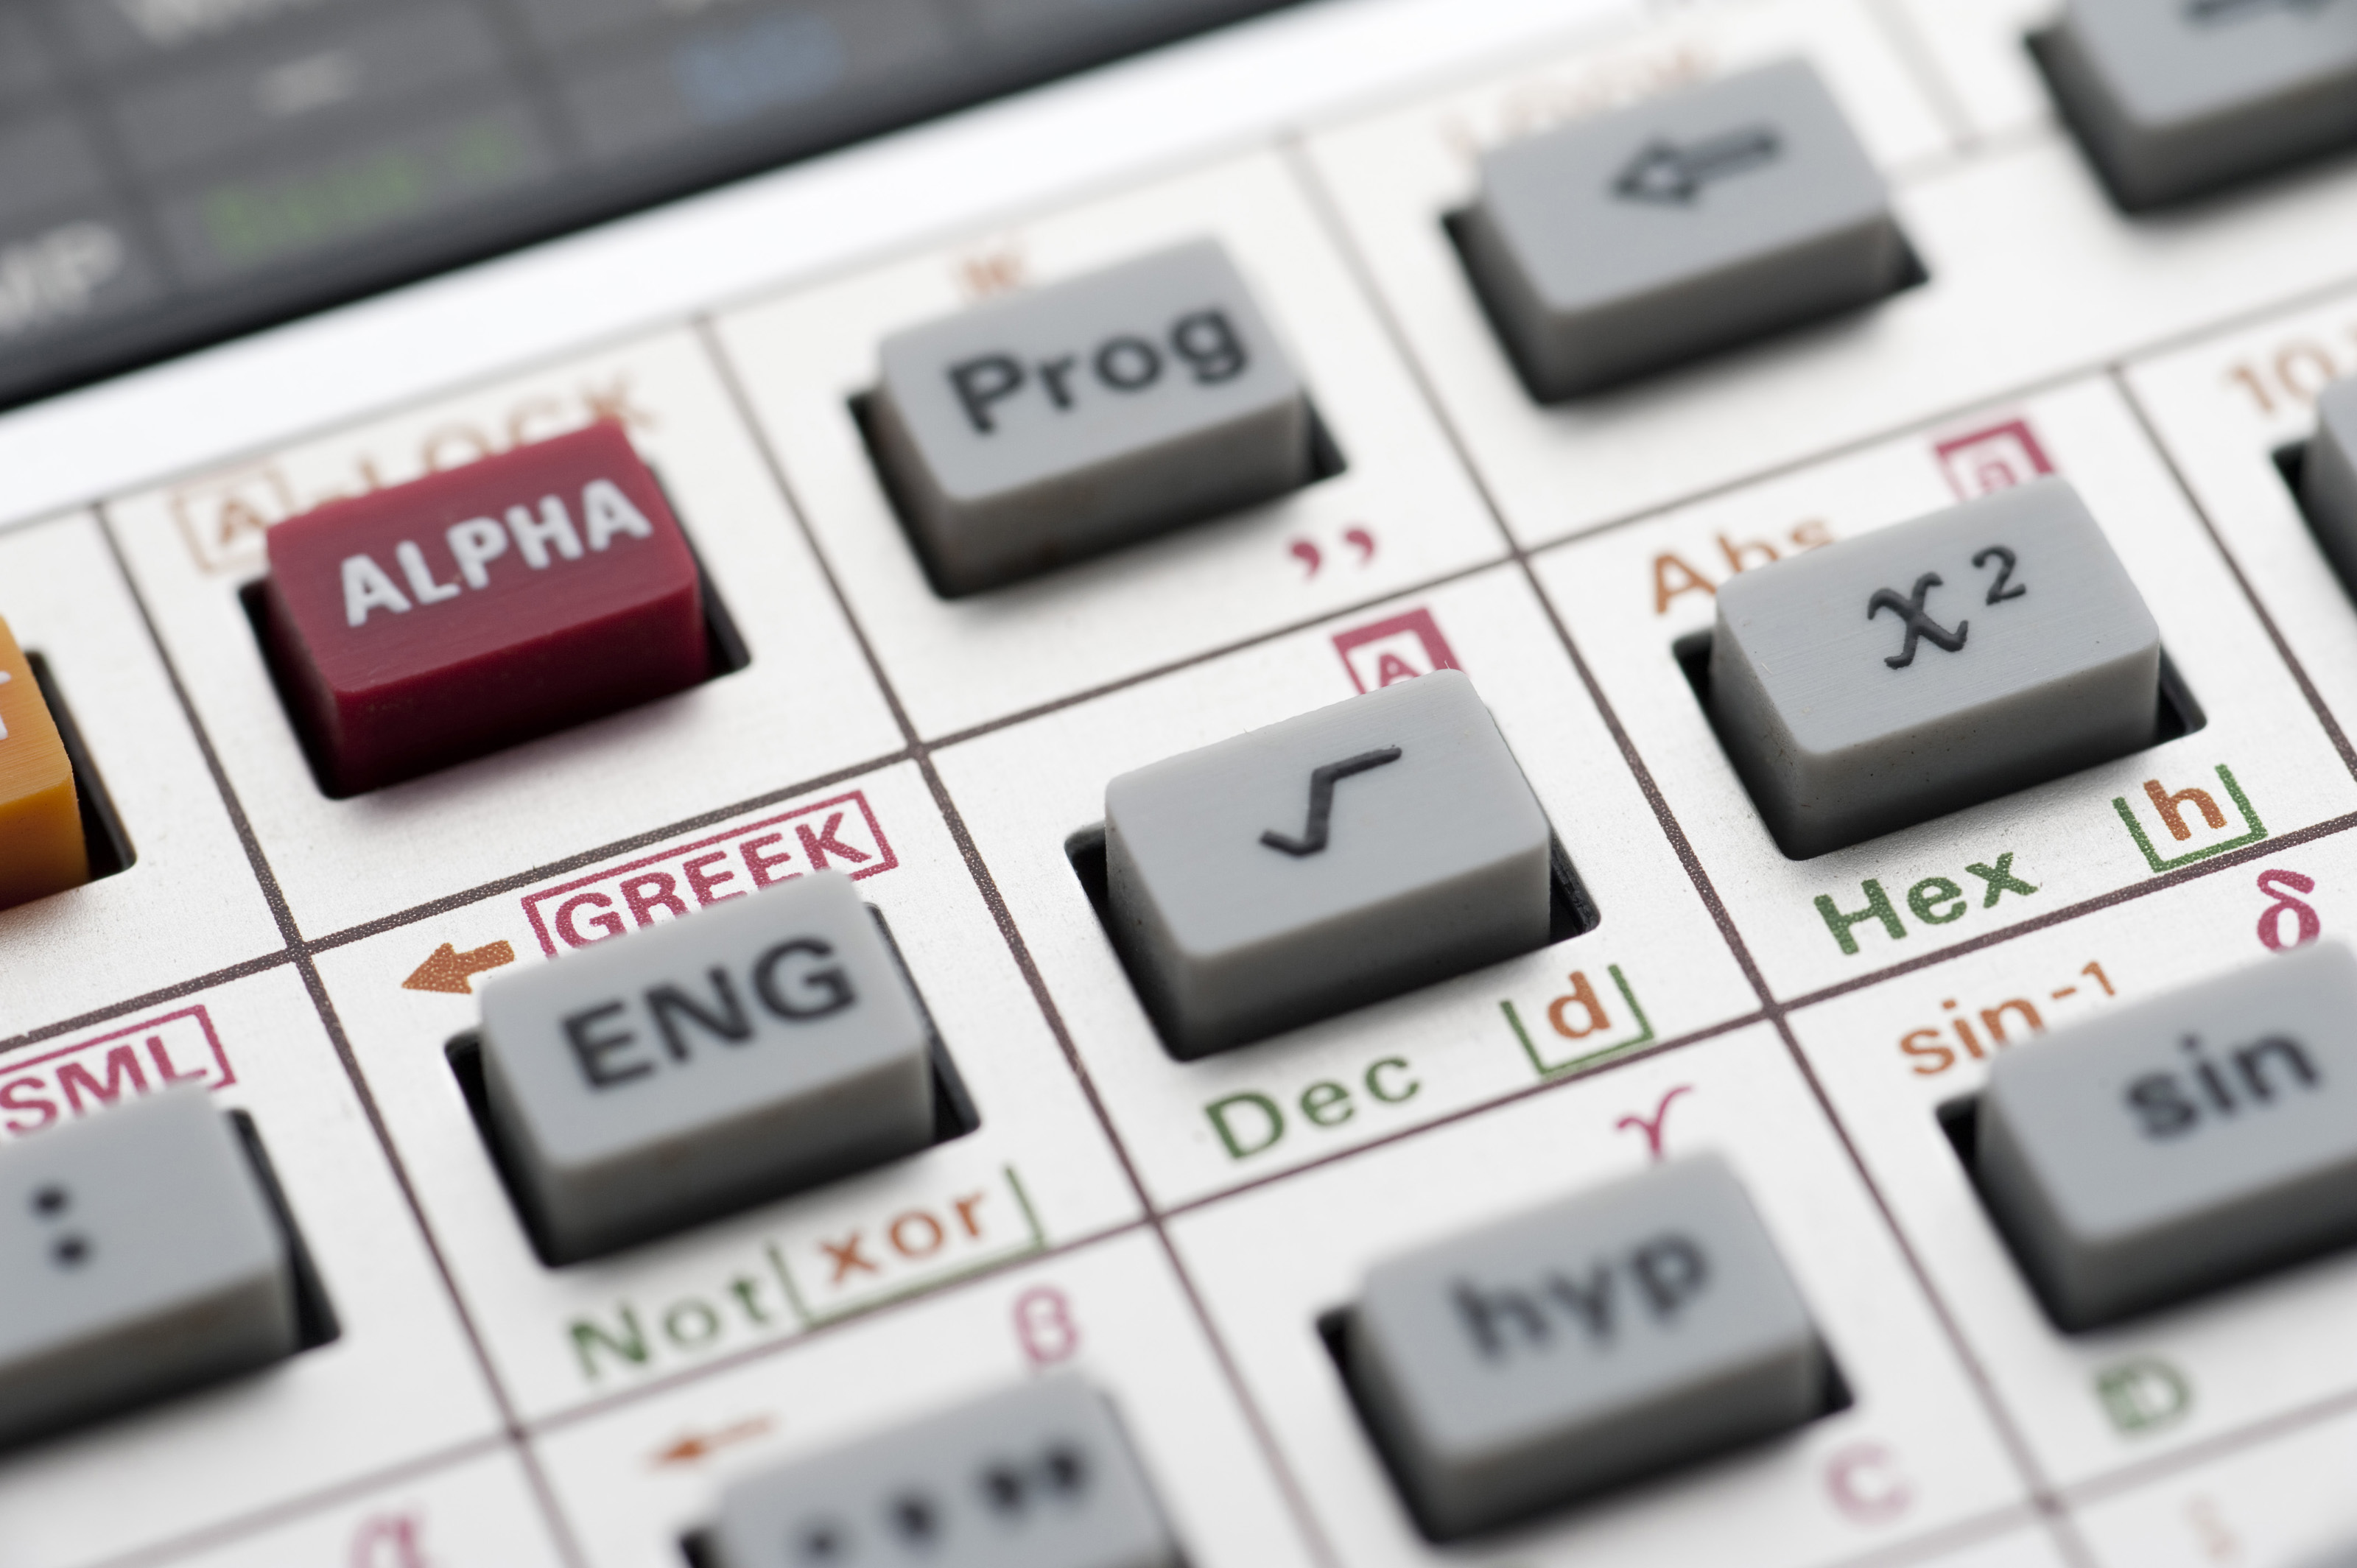 Free stock photo 5373 square root symbol freeimageslive selective focus to the square root symbol on the keypad of a complex mathematical calculator buycottarizona Images